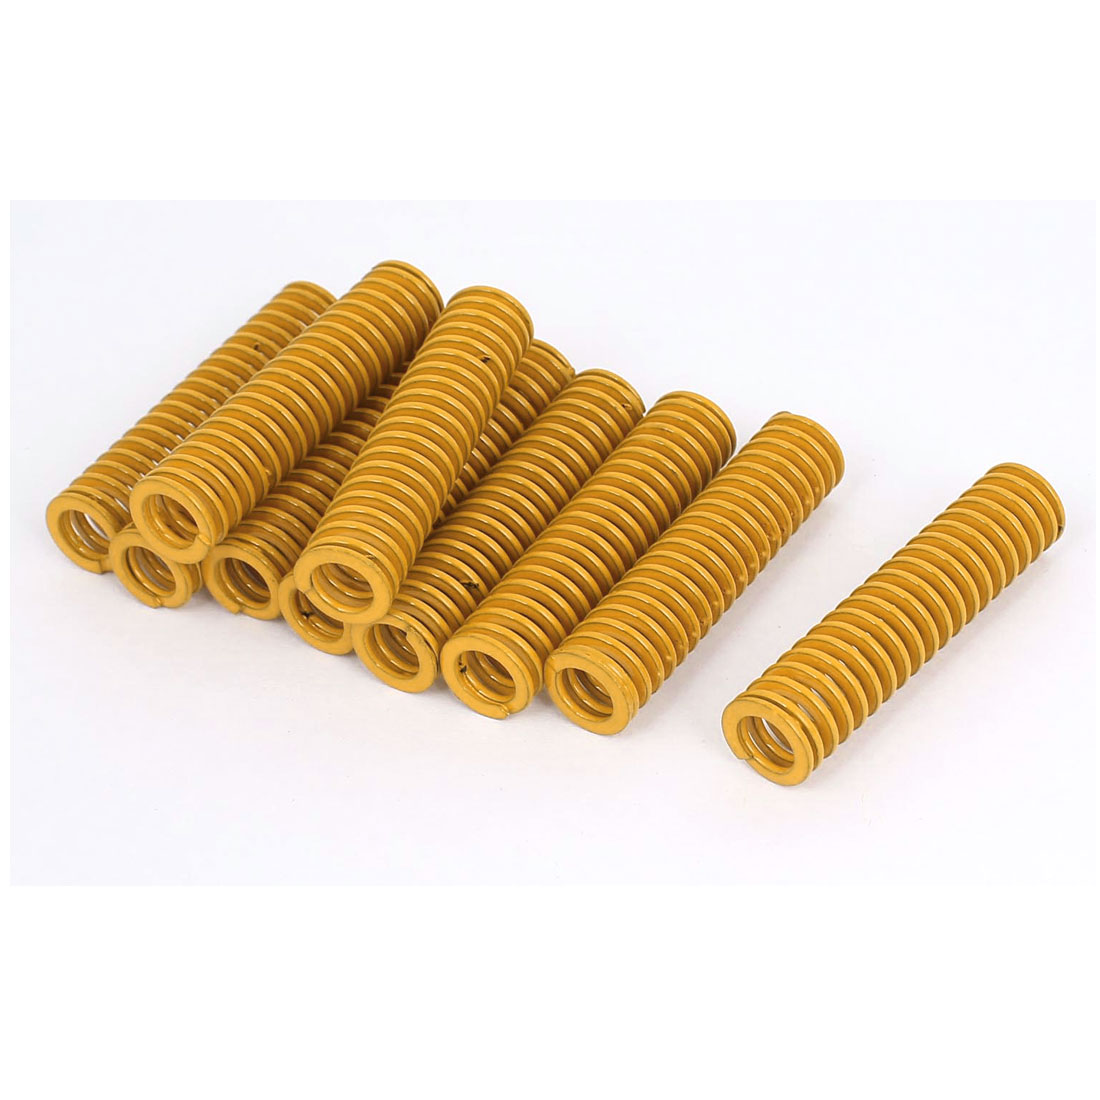 14mm OD 60mm Long Light Load Stamping Compression Mold Die Spring Yellow 10pcs